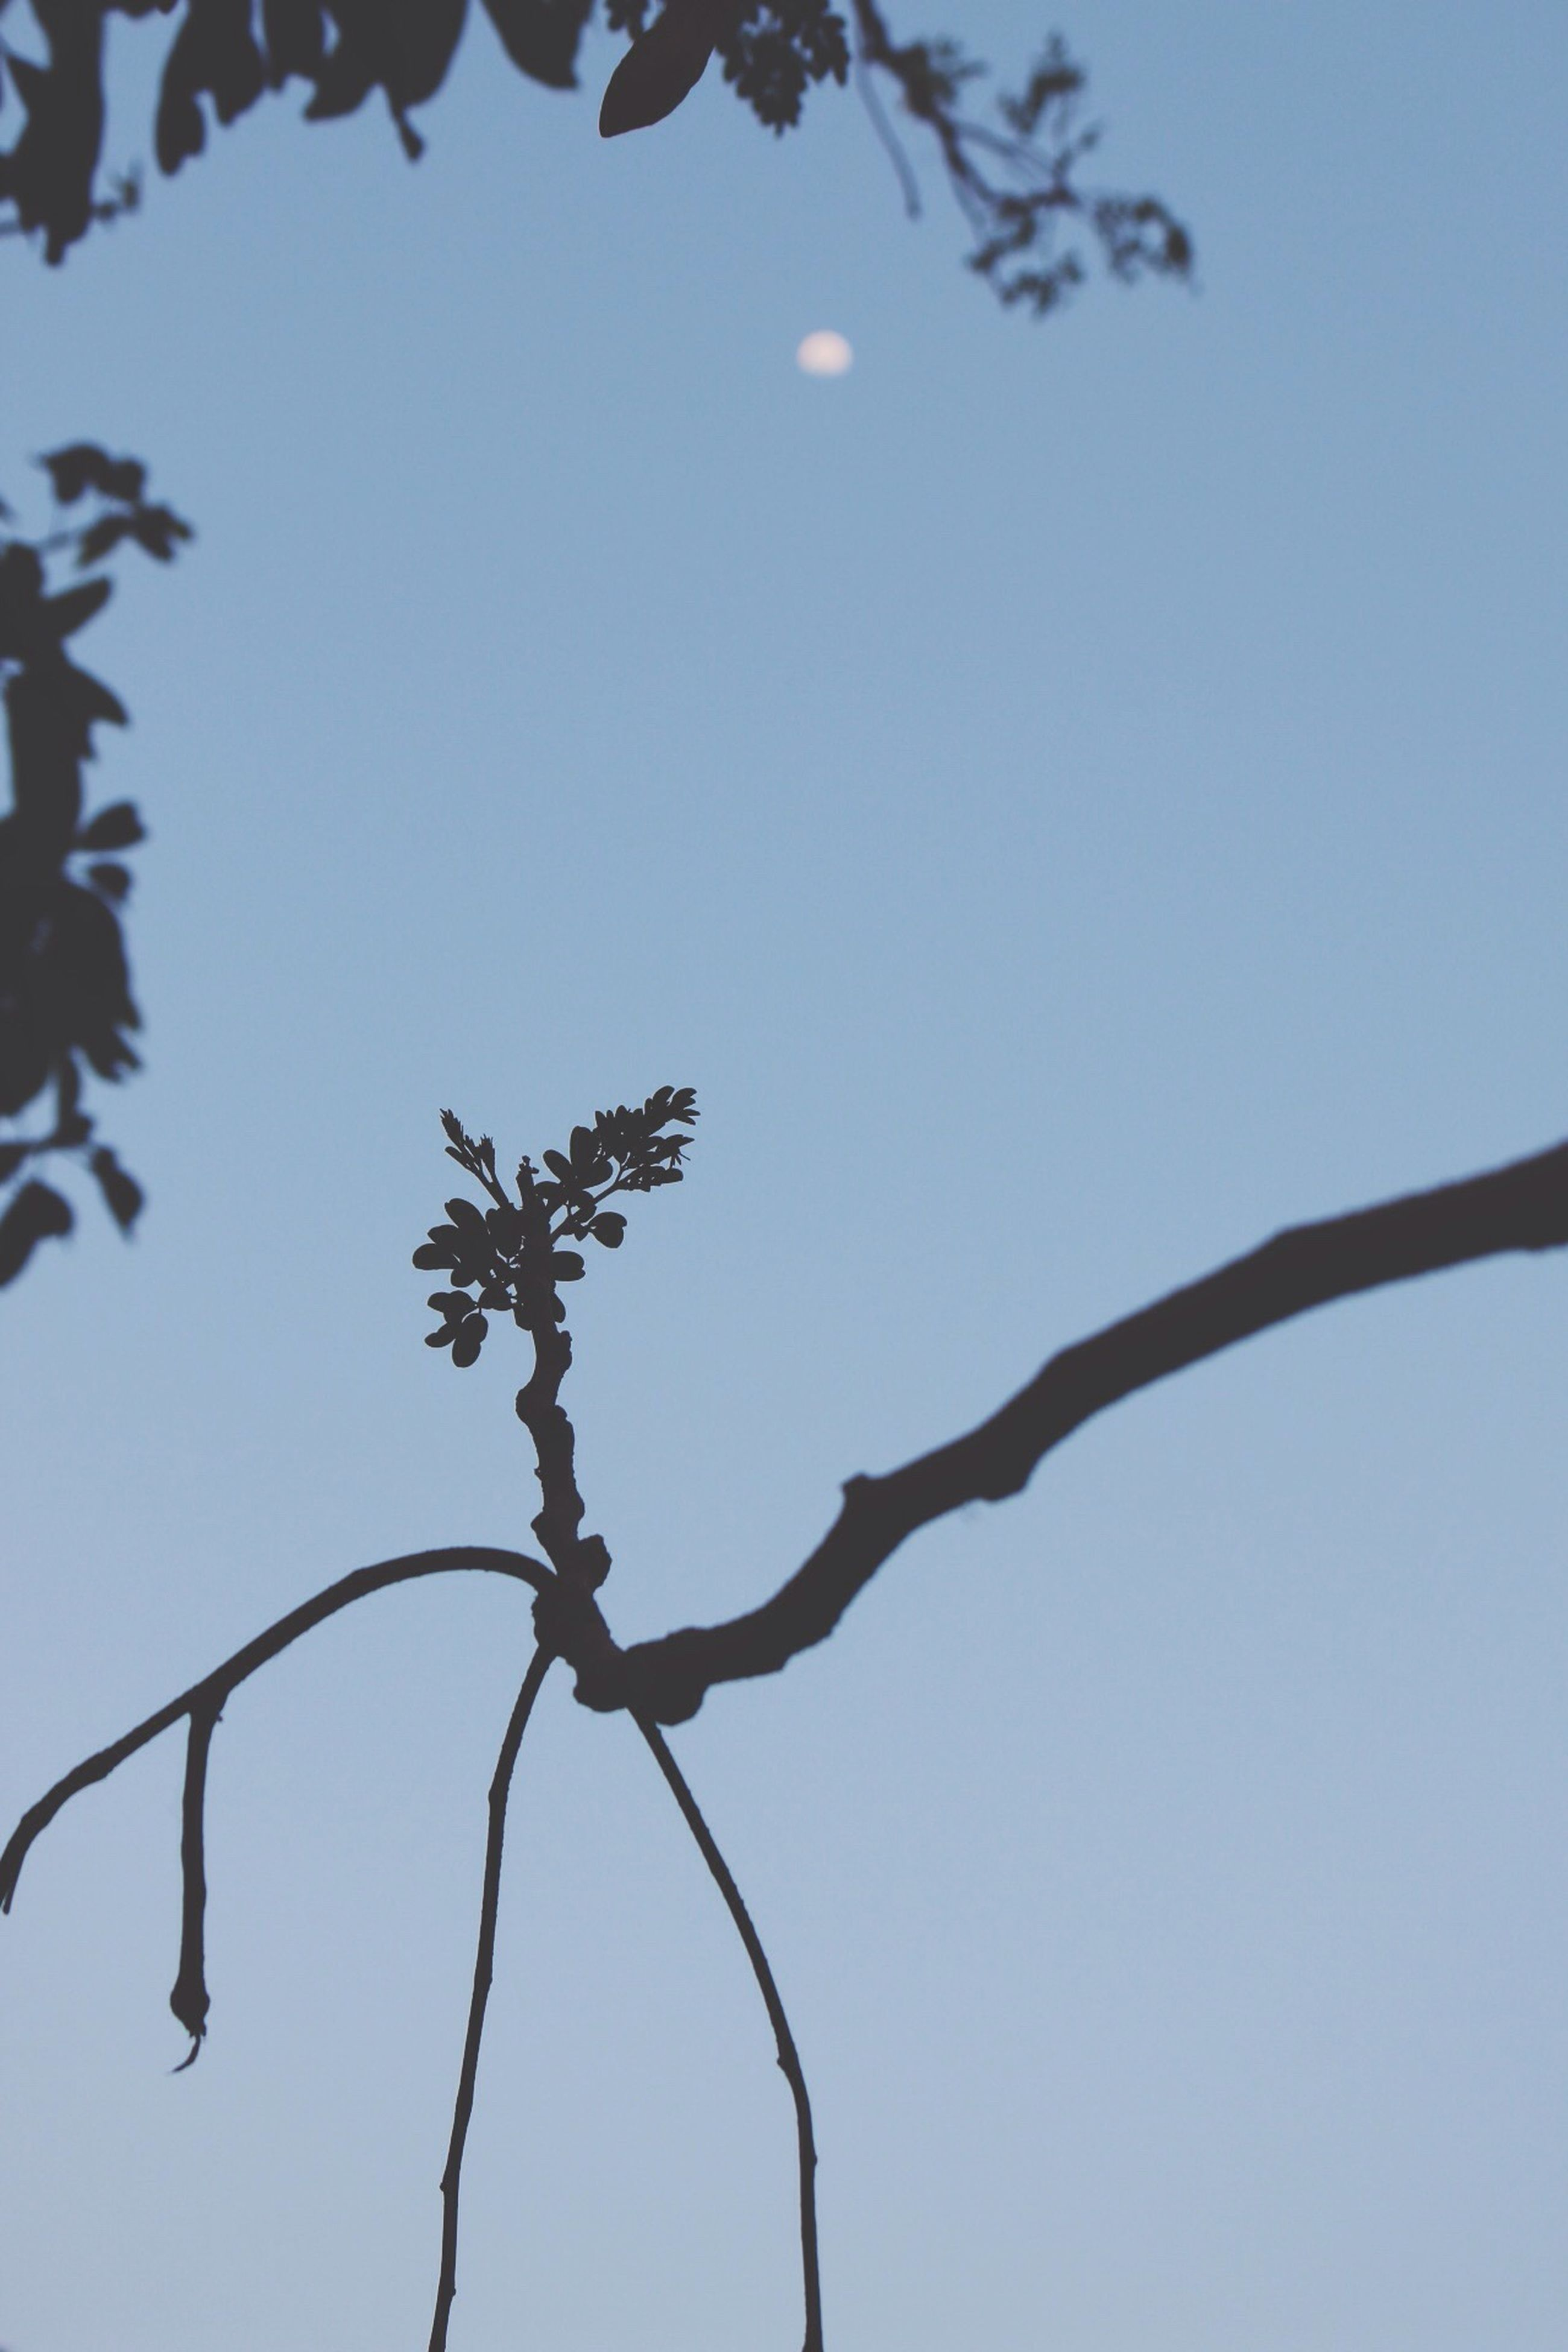 low angle view, clear sky, branch, nature, focus on foreground, tree, twig, close-up, sky, perching, animal themes, outdoors, copy space, blue, no people, day, silhouette, growth, animals in the wild, bird